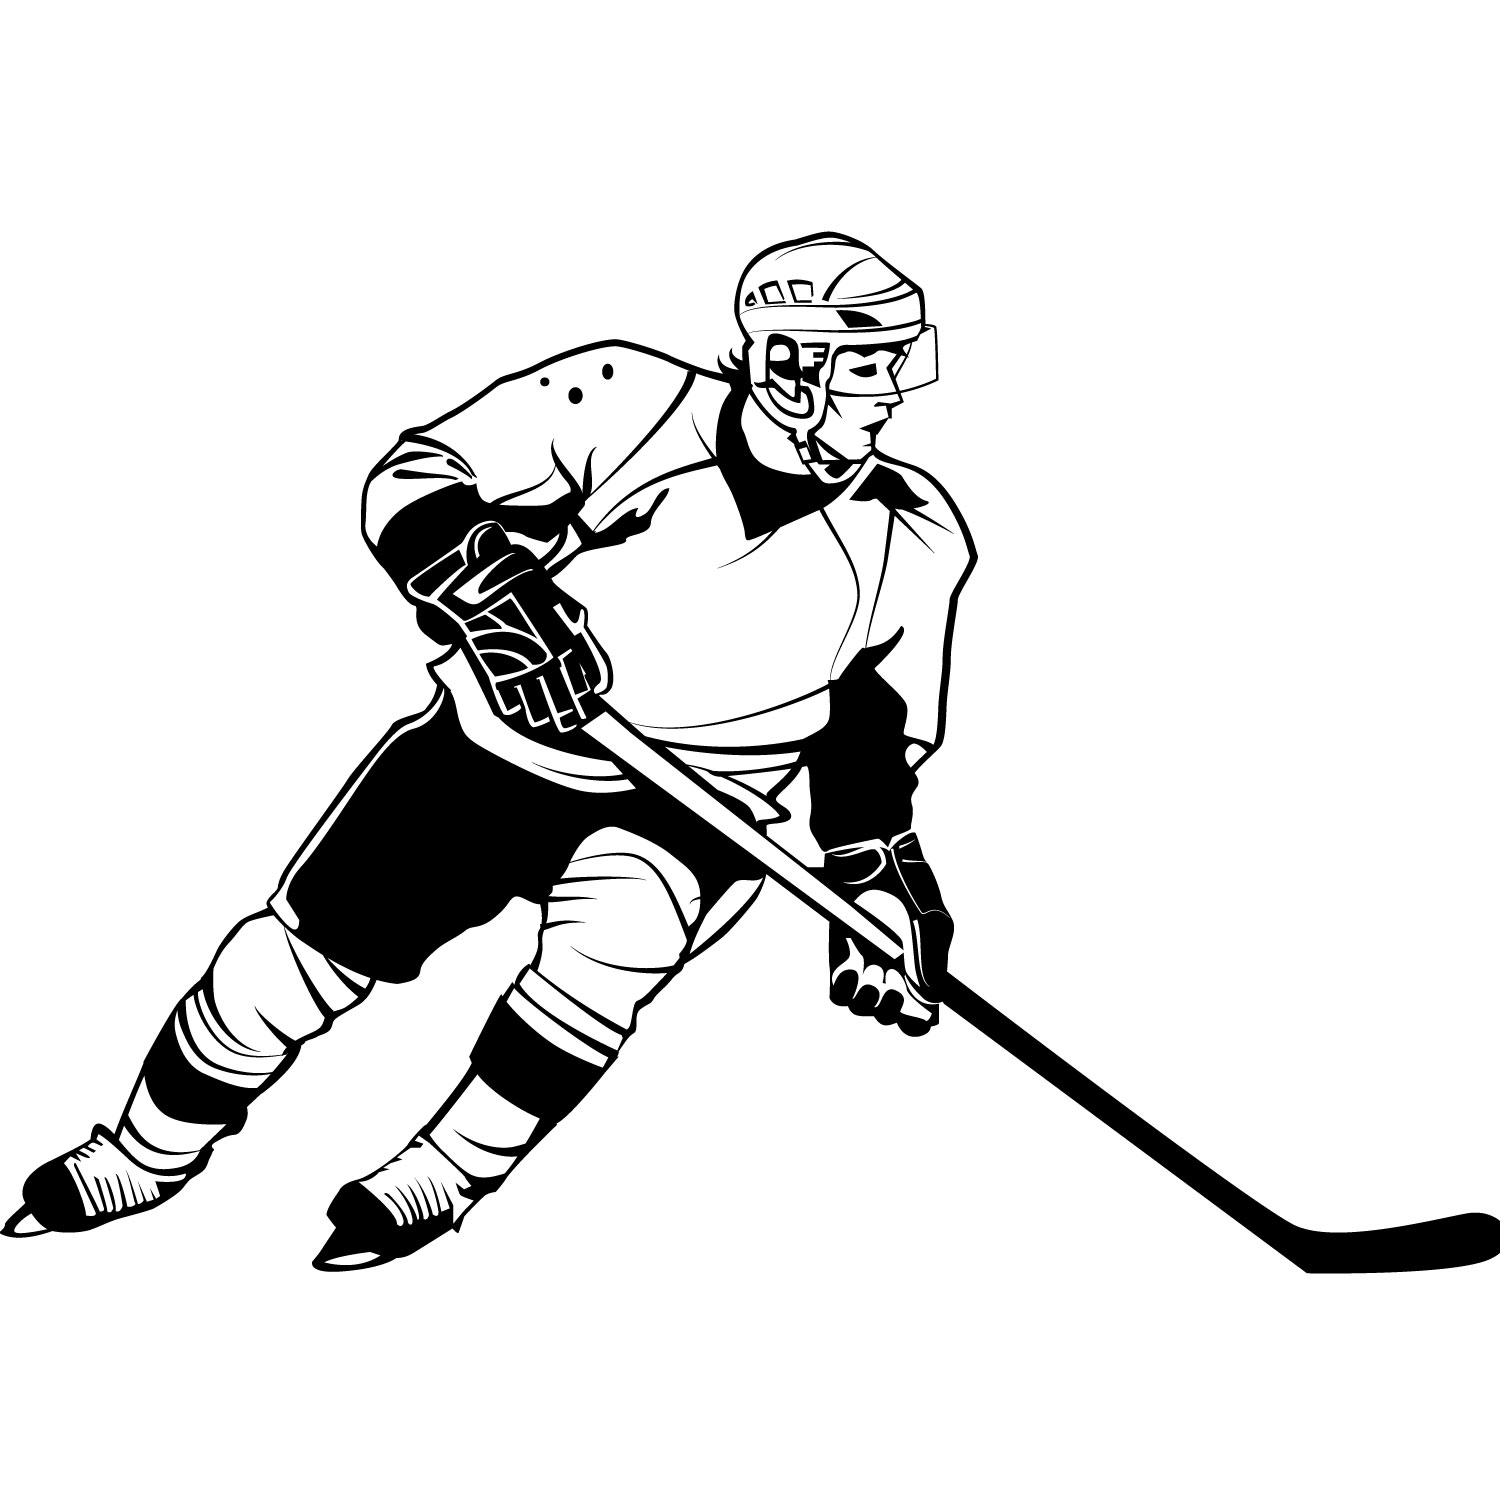 floor hockey coloring pages - photo#27